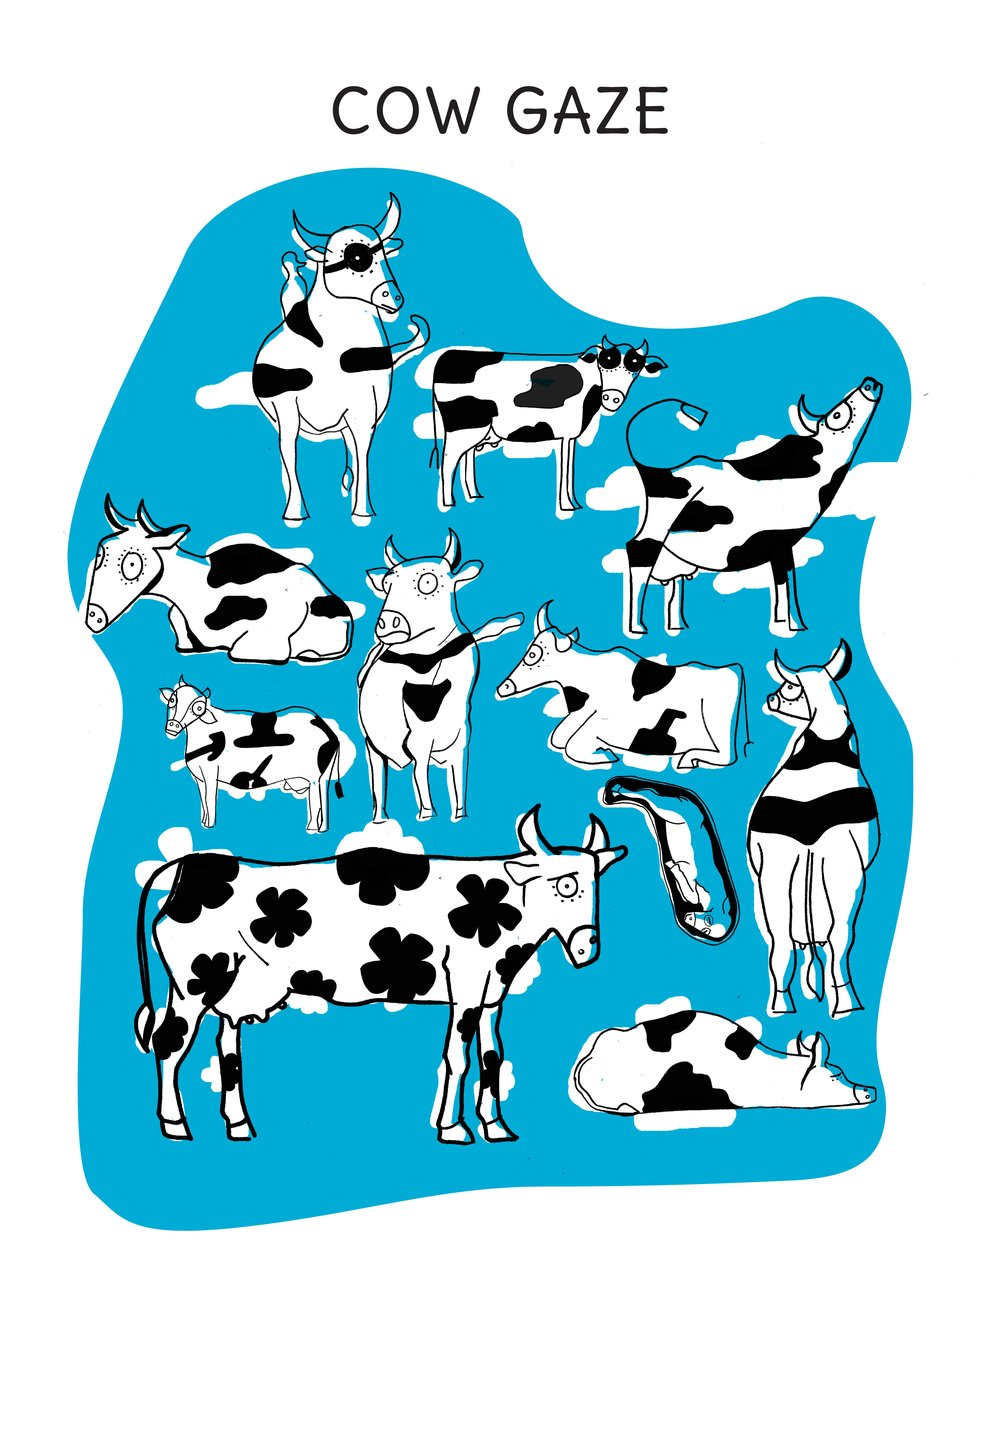 Cow spots, just like clouds, take different forms and meanings. This is an illustration inspired by a Made-Up Memories workshop that explored middle-eastern conflicts with a student activist group. The cow and farm told an allegorical story.